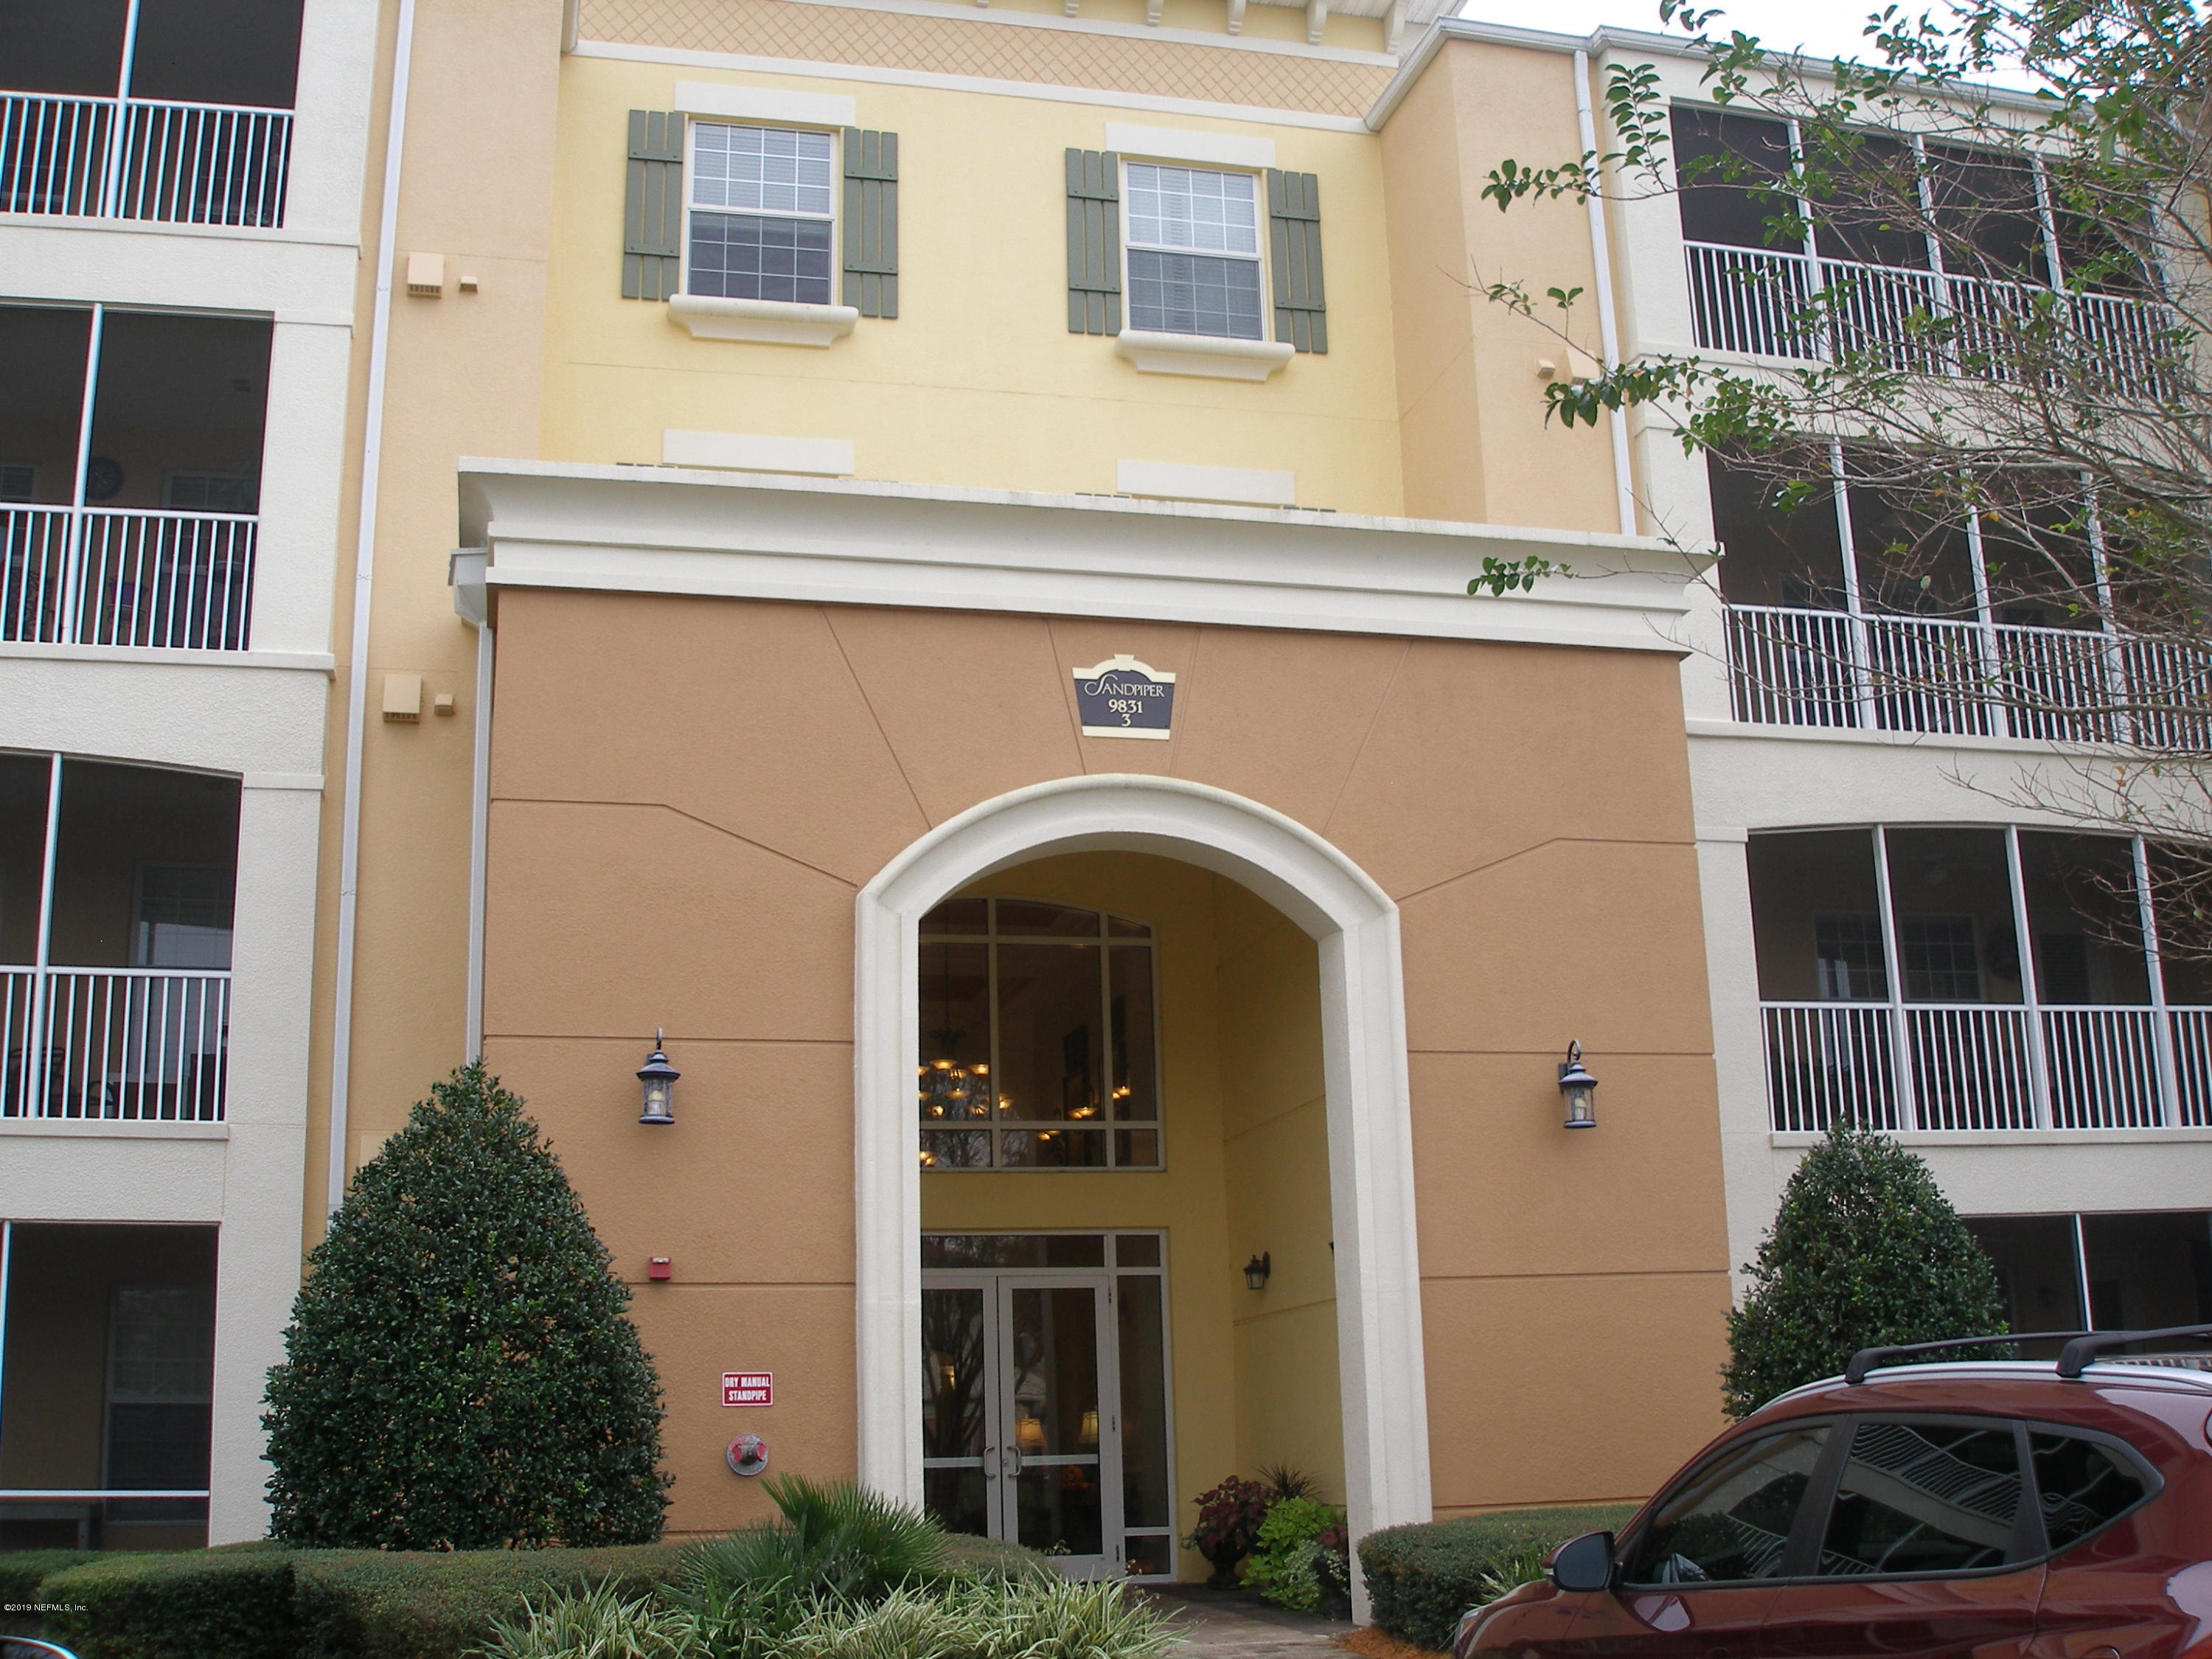 9831 DEL WEBB, JACKSONVILLE, FLORIDA 32256, 2 Bedrooms Bedrooms, ,2 BathroomsBathrooms,Condo,For sale,DEL WEBB,1021274